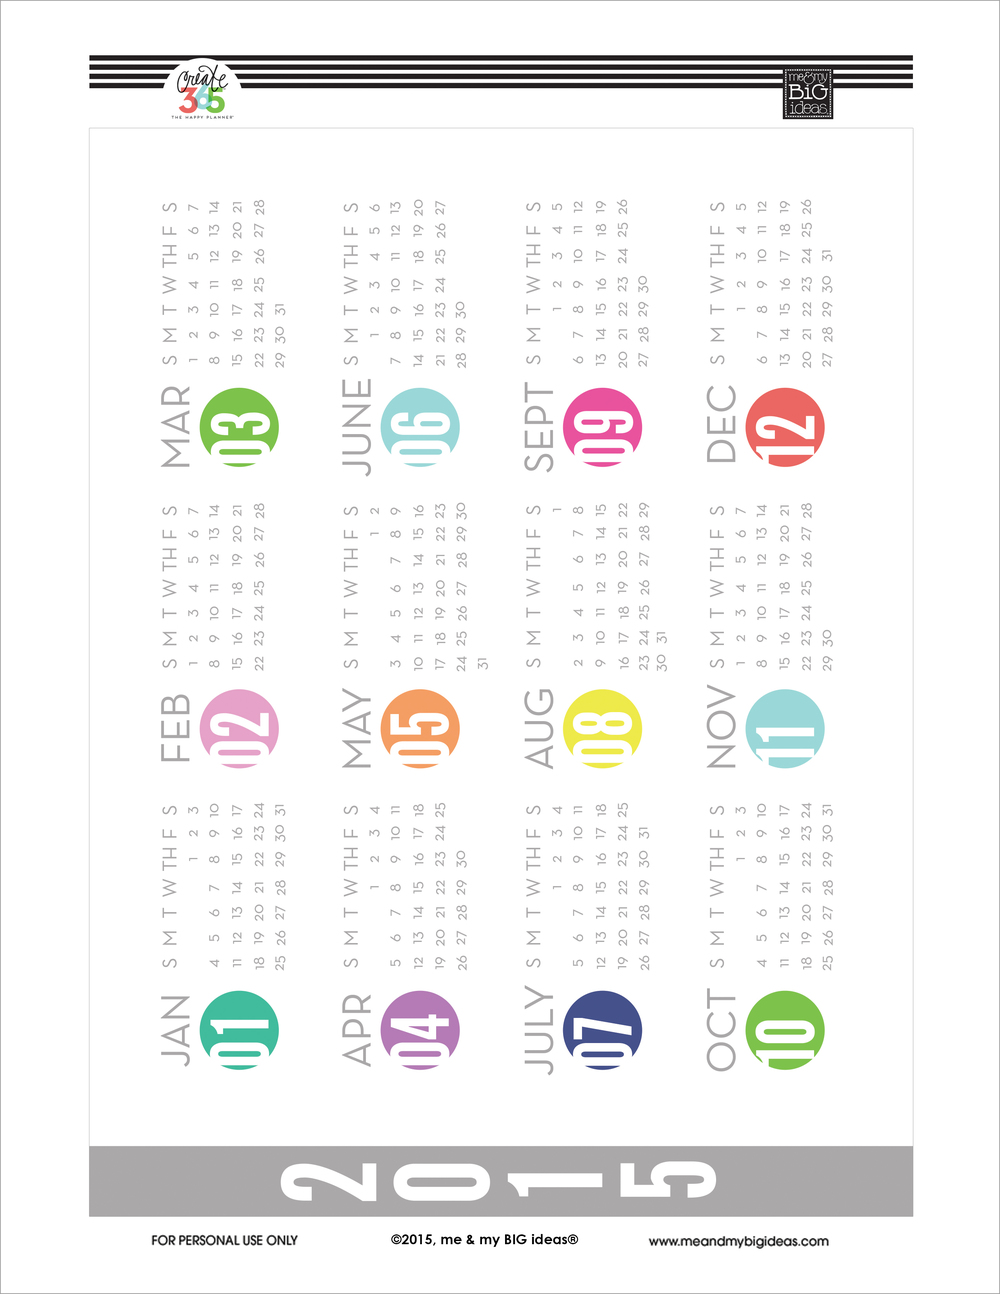 2015 'Year at a Glance' Free Printable for Create 365™ The Happy Planner™ | me & my BIG ideas